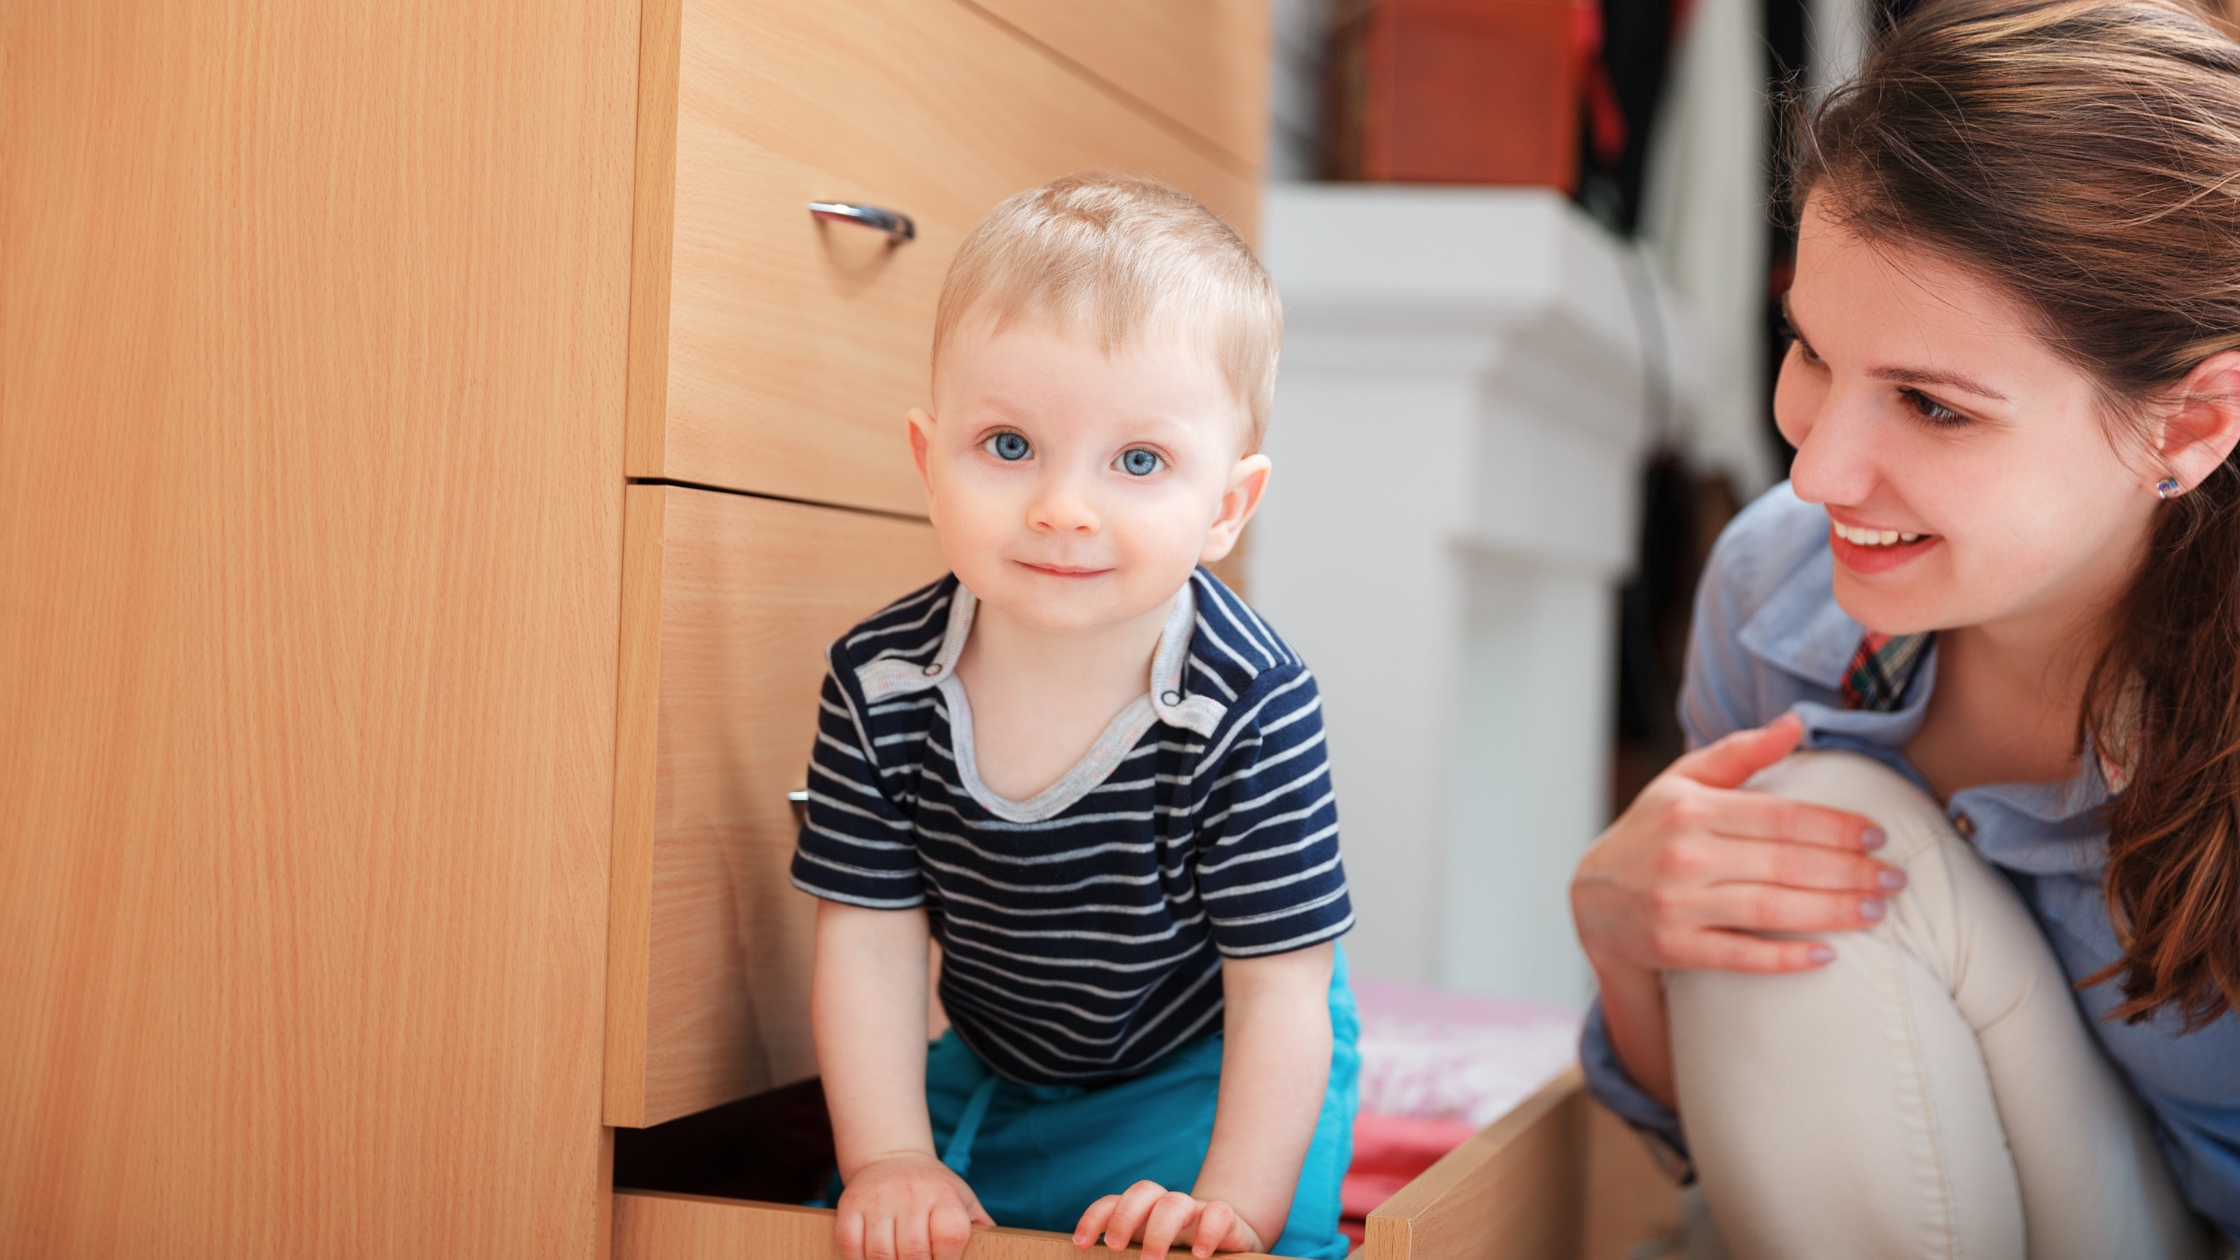 baby in a dresser drawer attended by mother